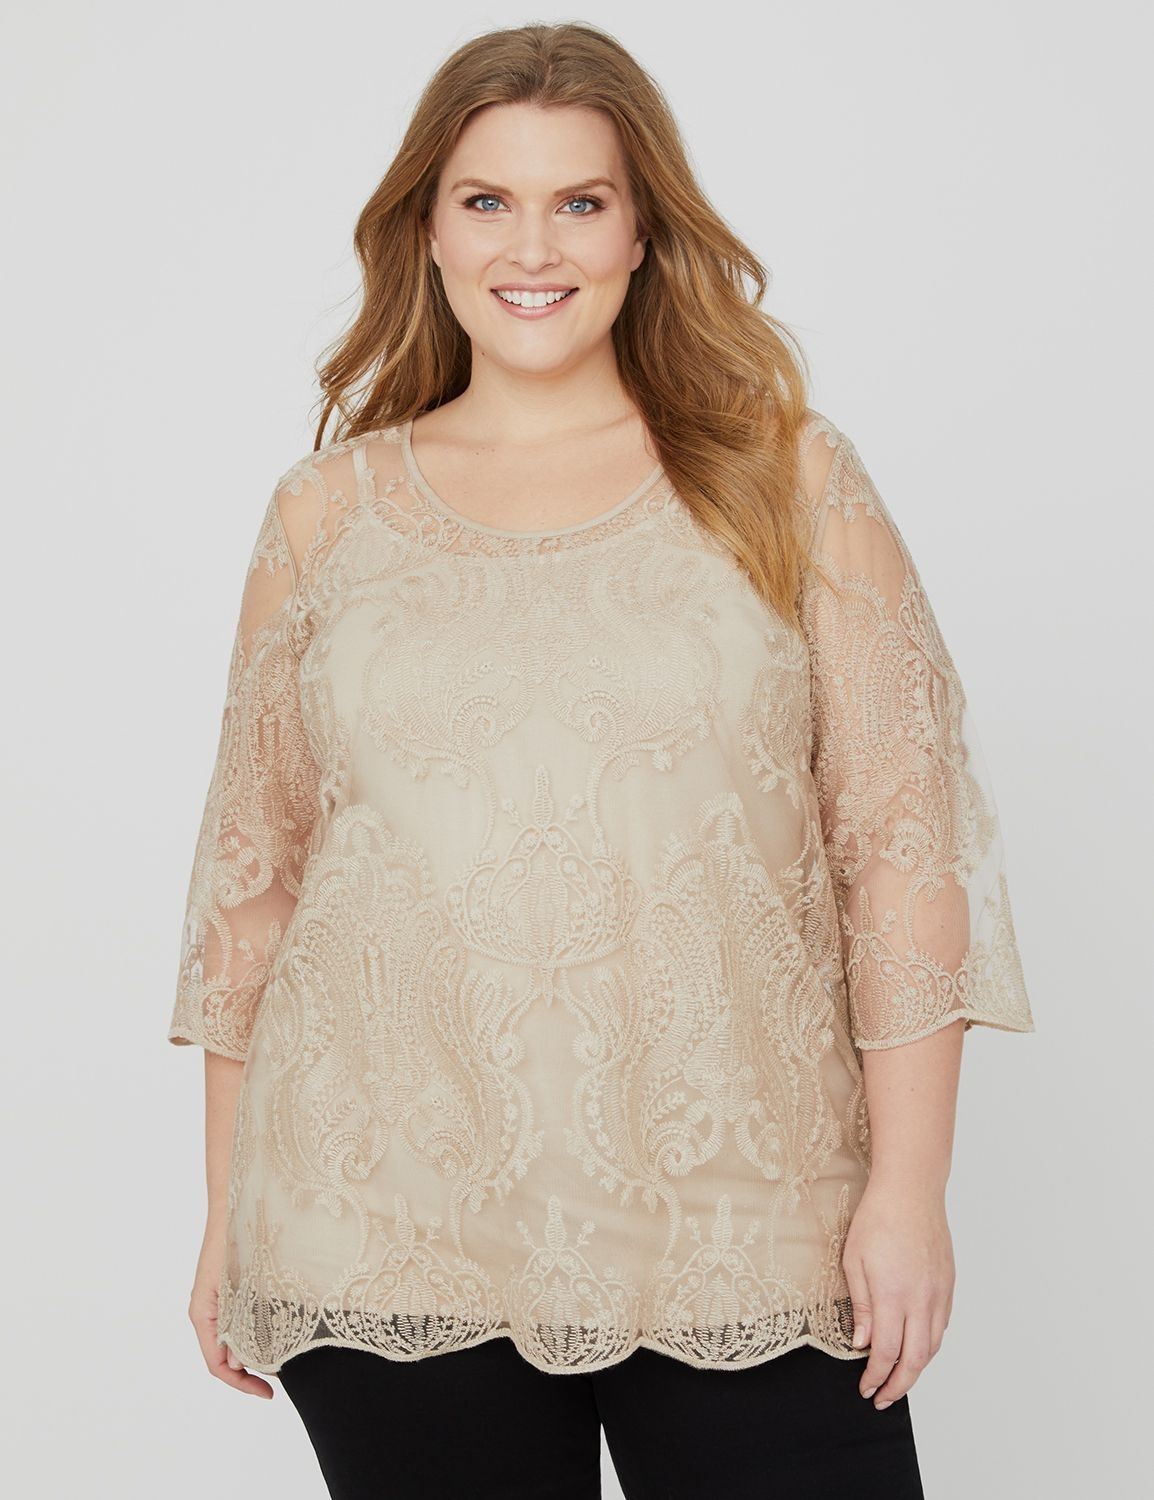 Soft Afterglow Top 1091394 Nuance Mesh Embroidered Tun MP-300103679